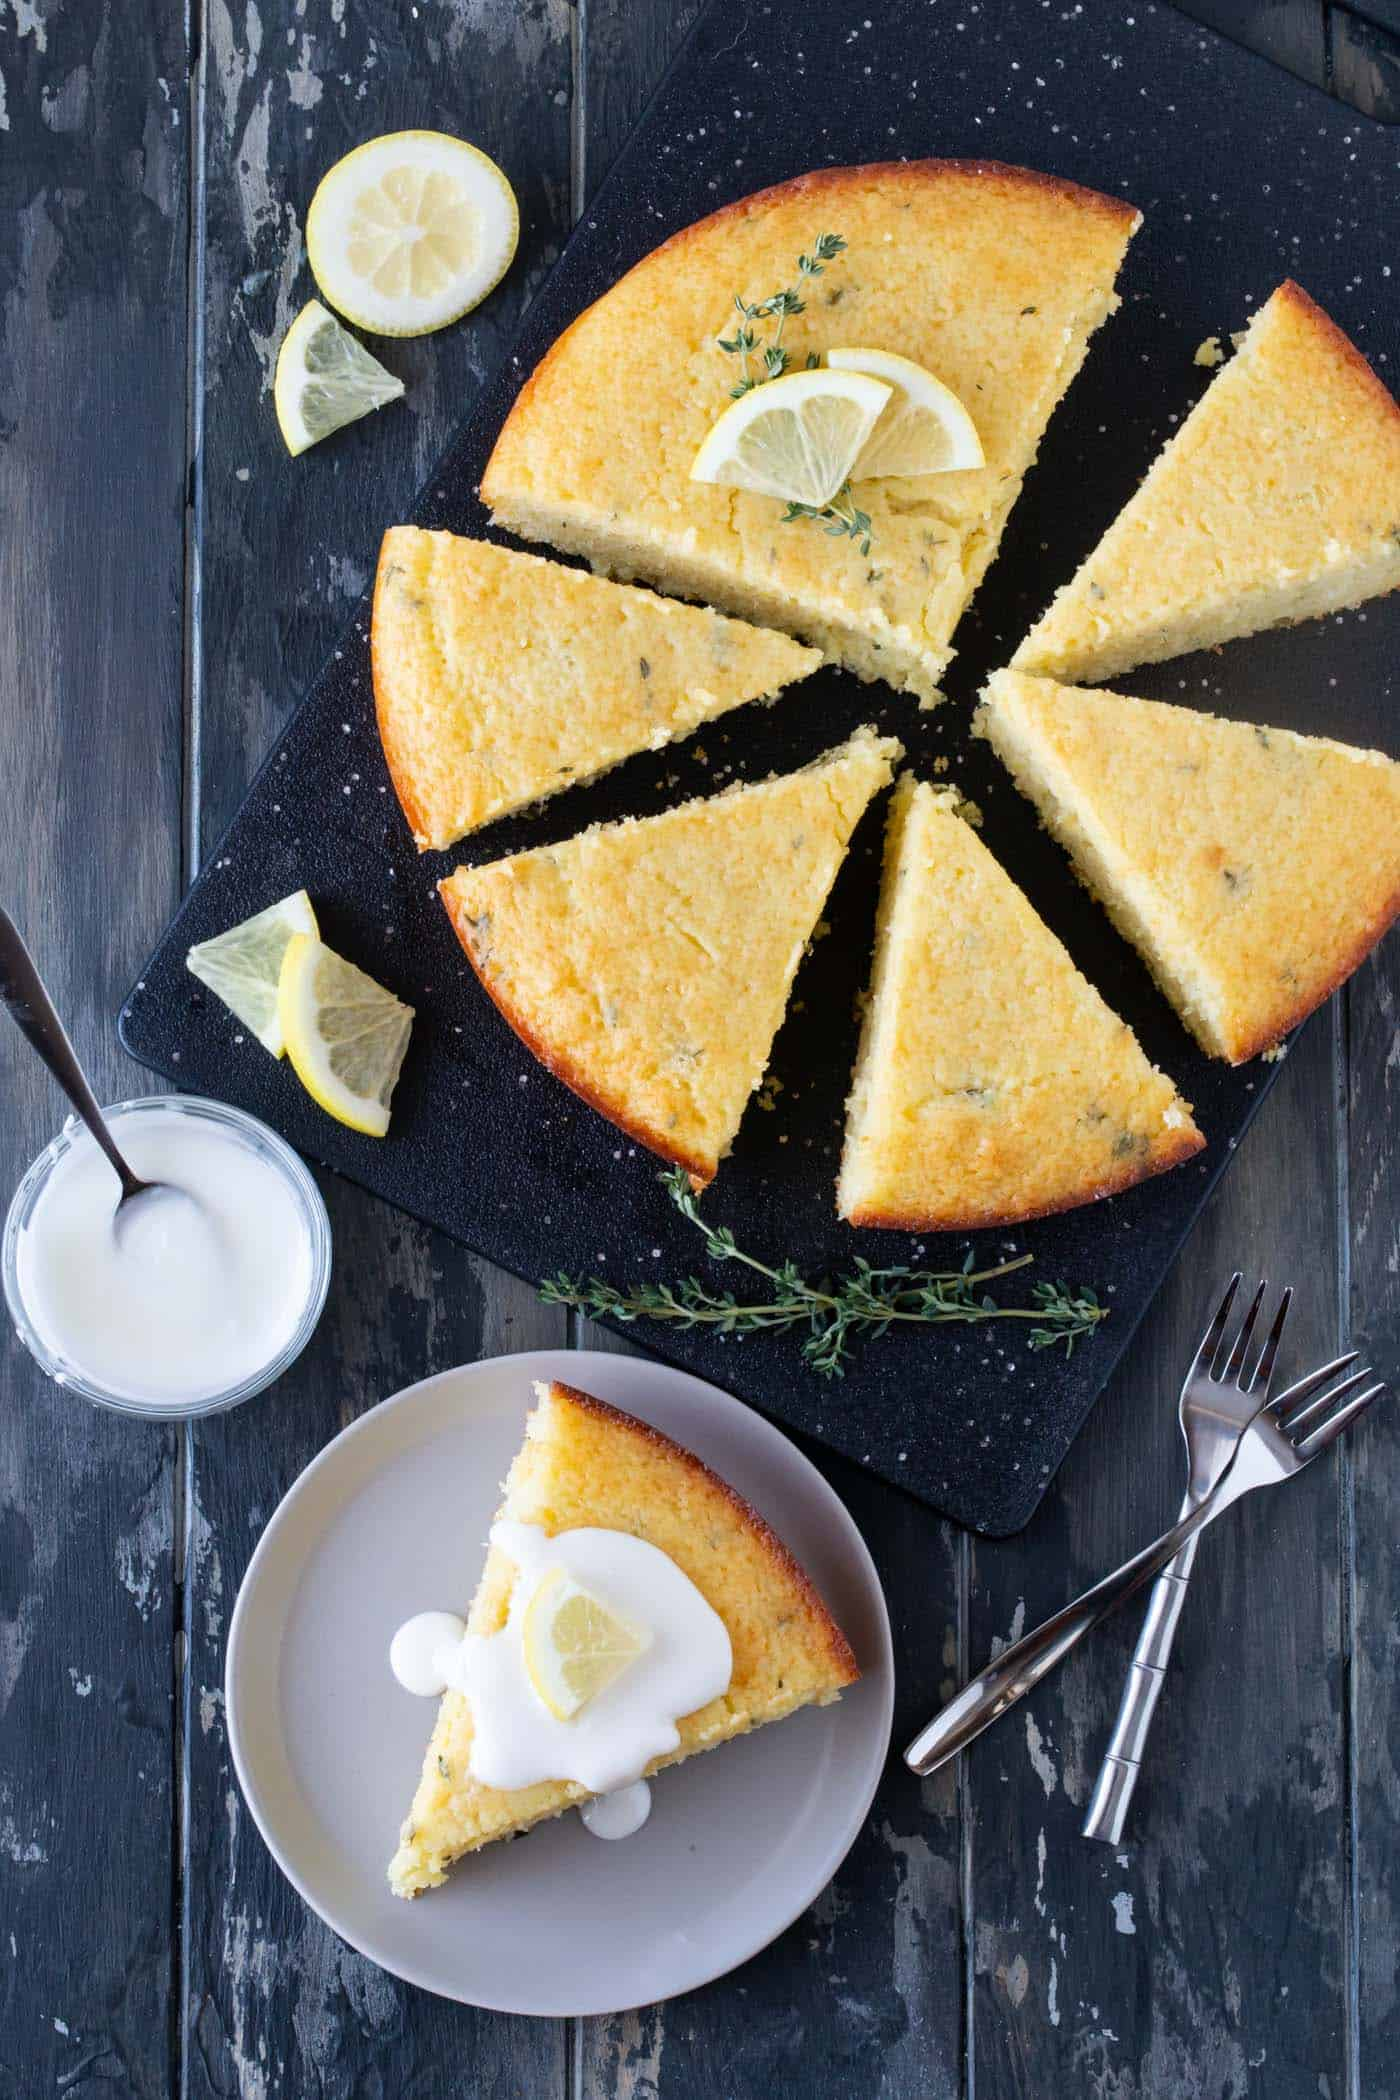 Slices of Lemon Thyme Breakfast Cake on a black cutting board. One slice is garnished with a lemon sugar frosting, fresh thyme and lemon slices.